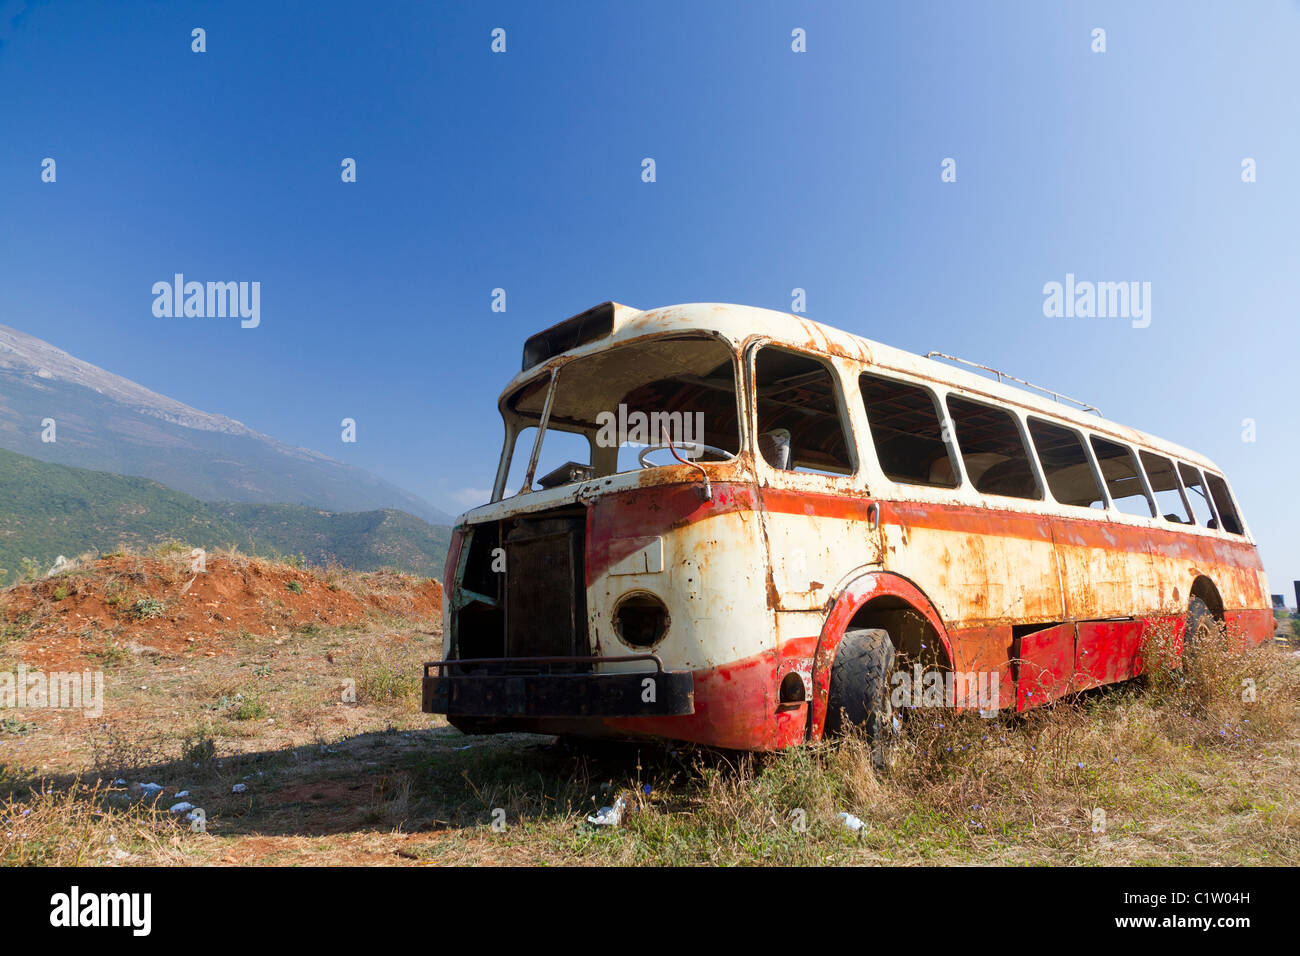 stripped rusty, old abandoned red bus wreck in arid mountainous landscape of Montenegro - Stock Image